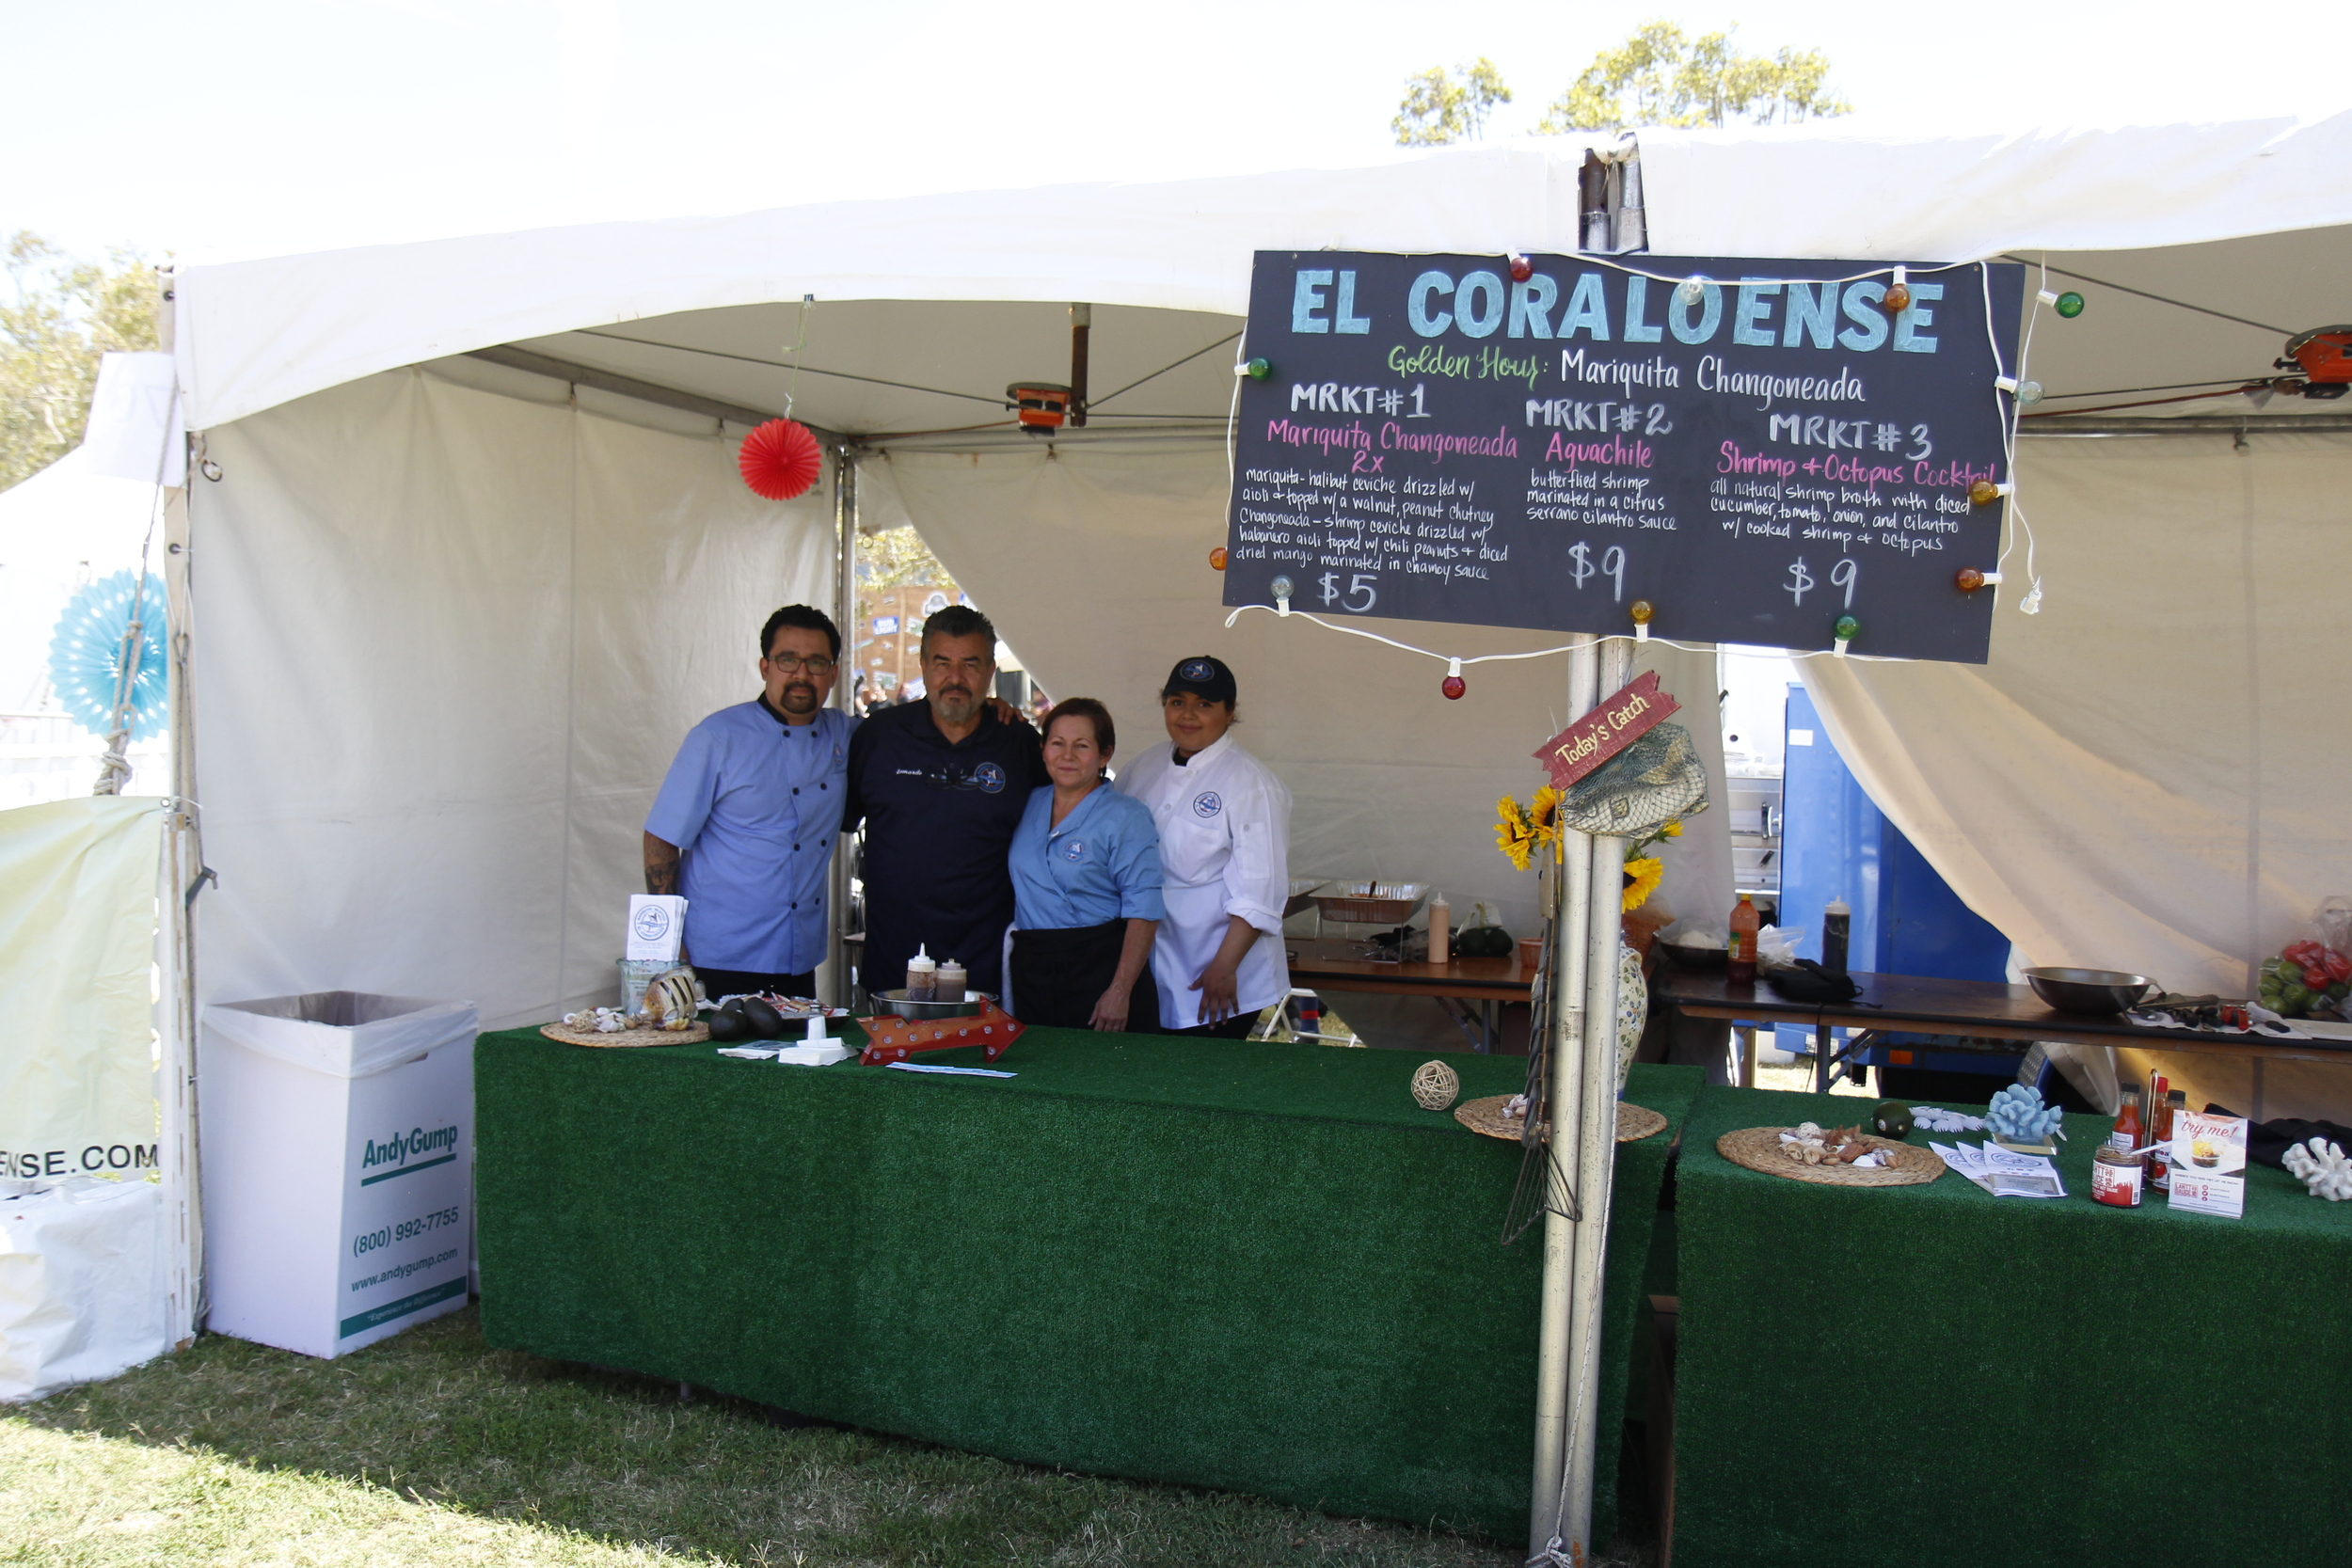 We met this awesome team of chefs cookin' up high quality seafood. Check their restaurant out!